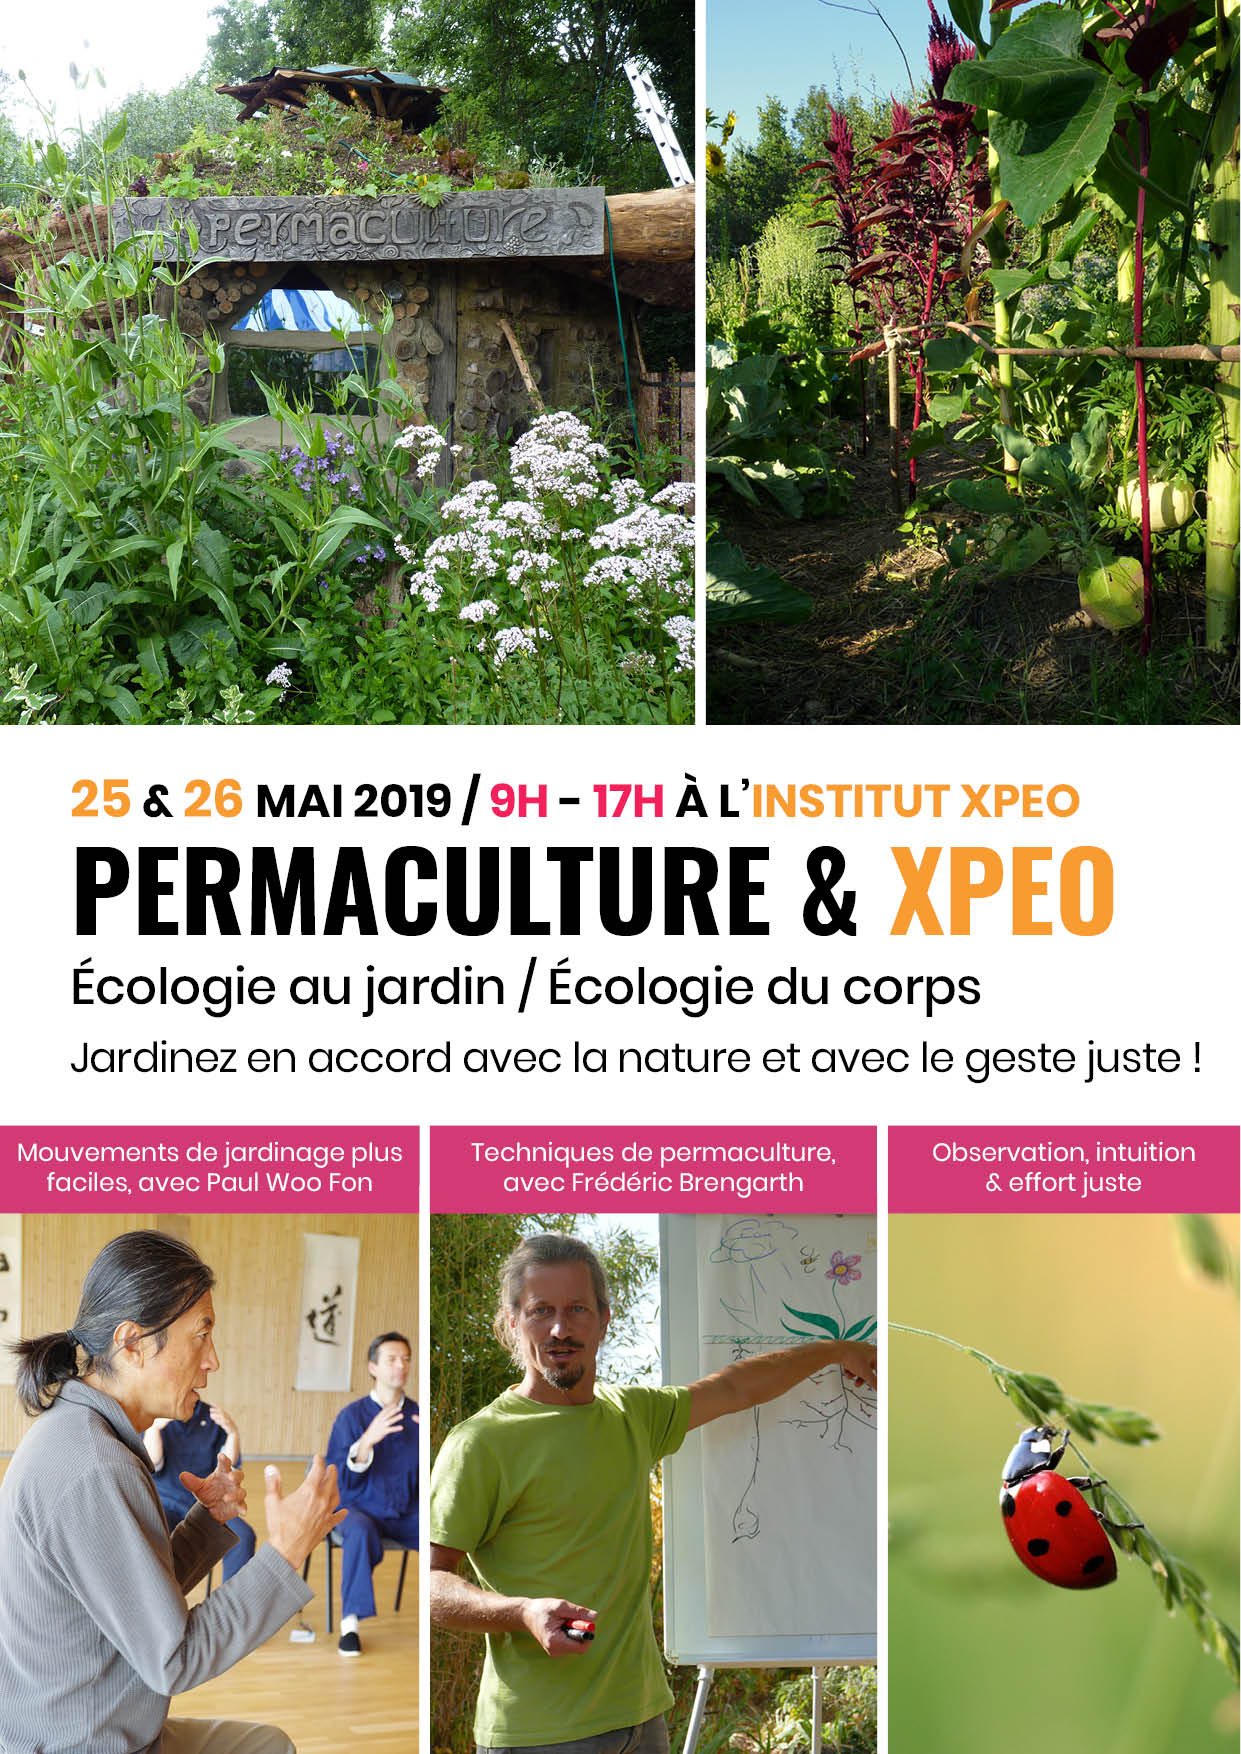 Permaculture & XPEO